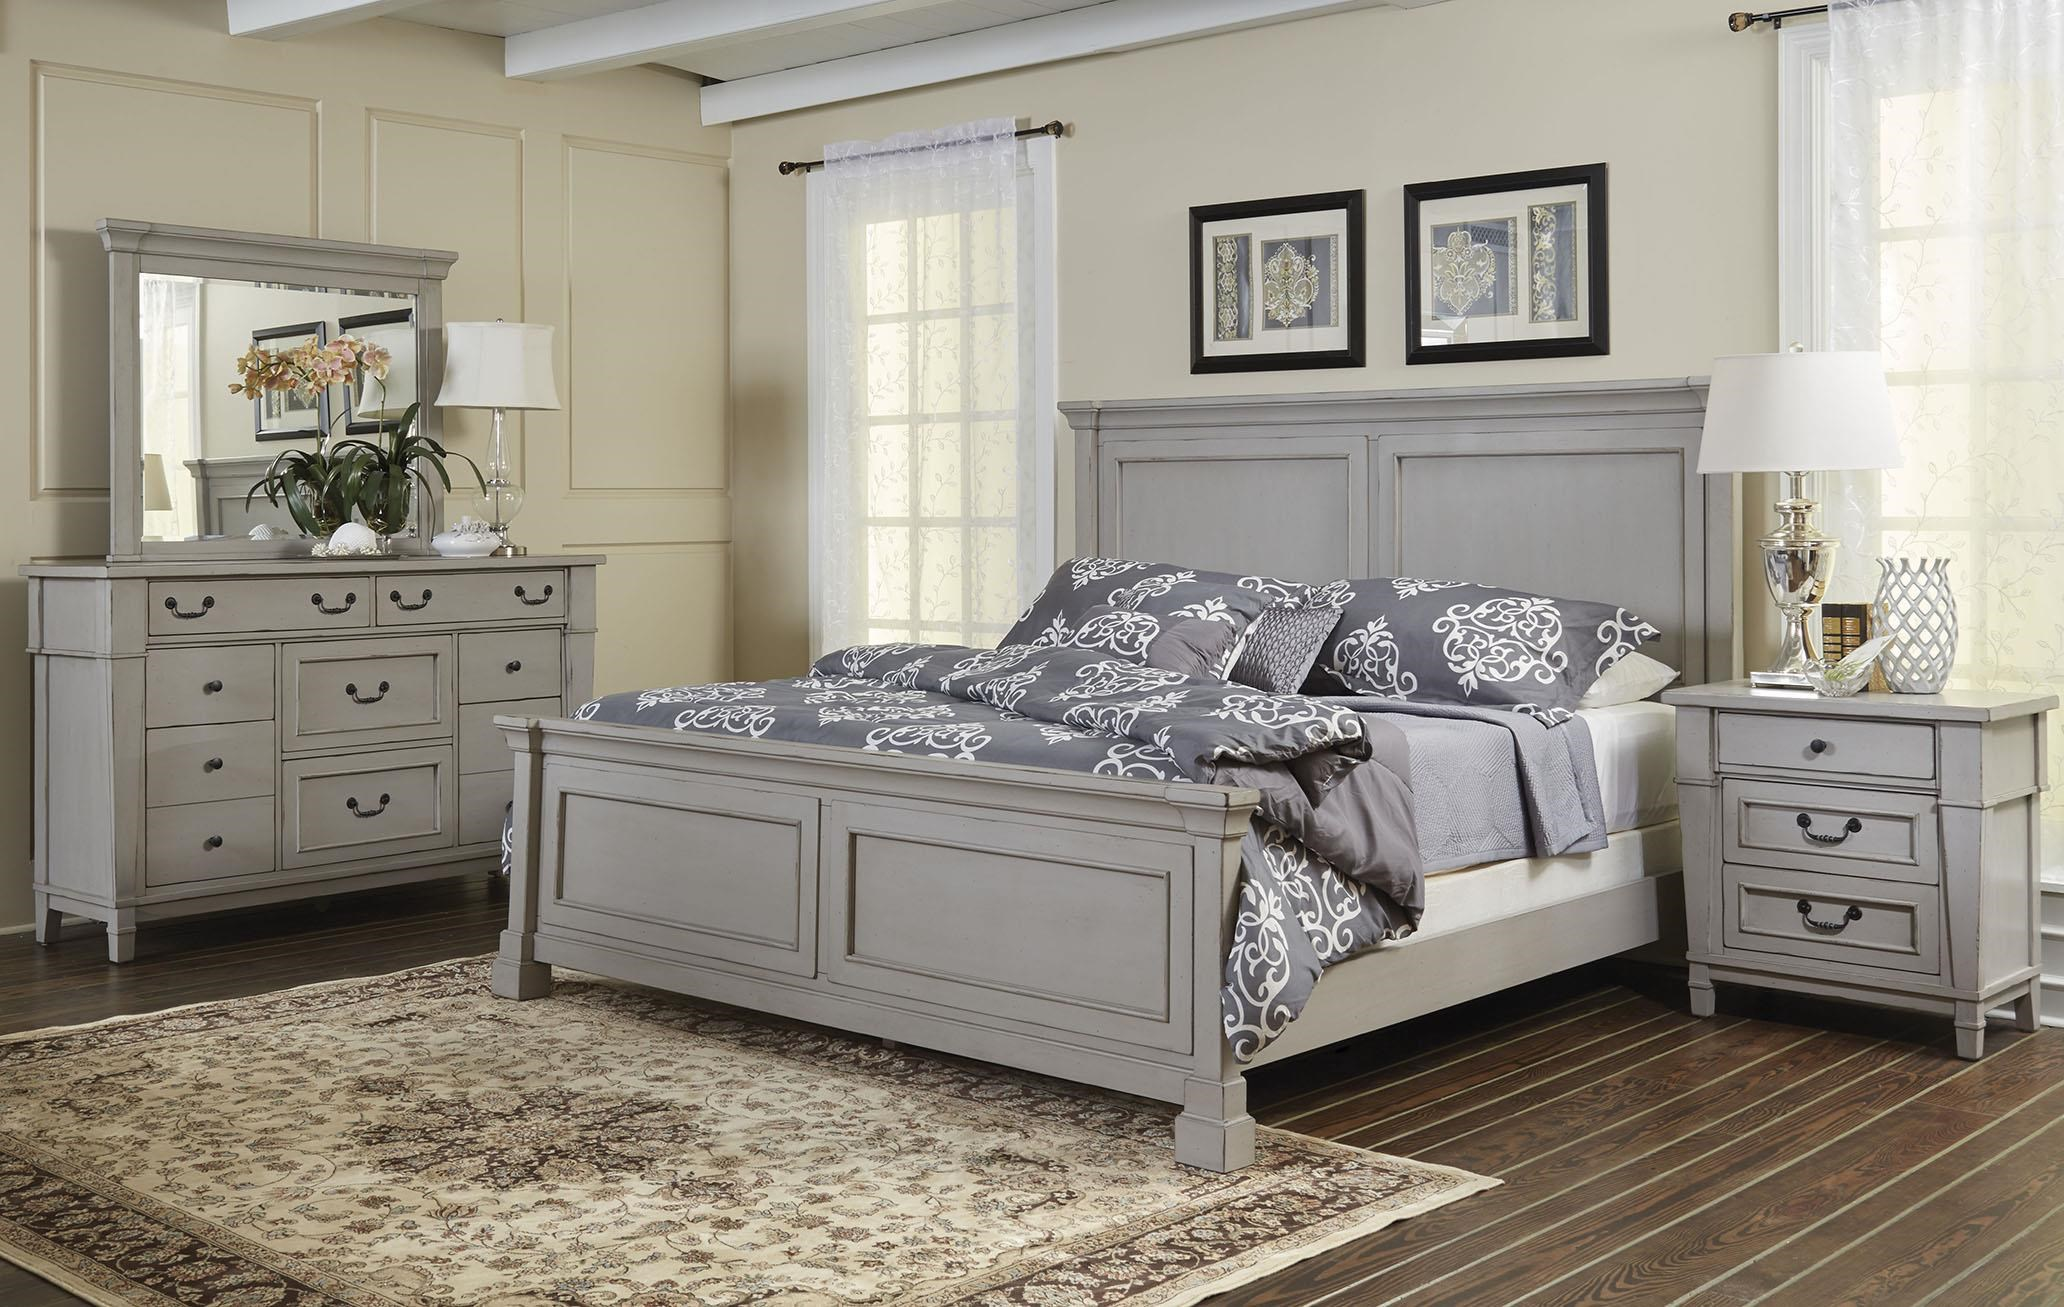 Stone Harbor Queen Panel Bed by Folio 21 at Johnny Janosik